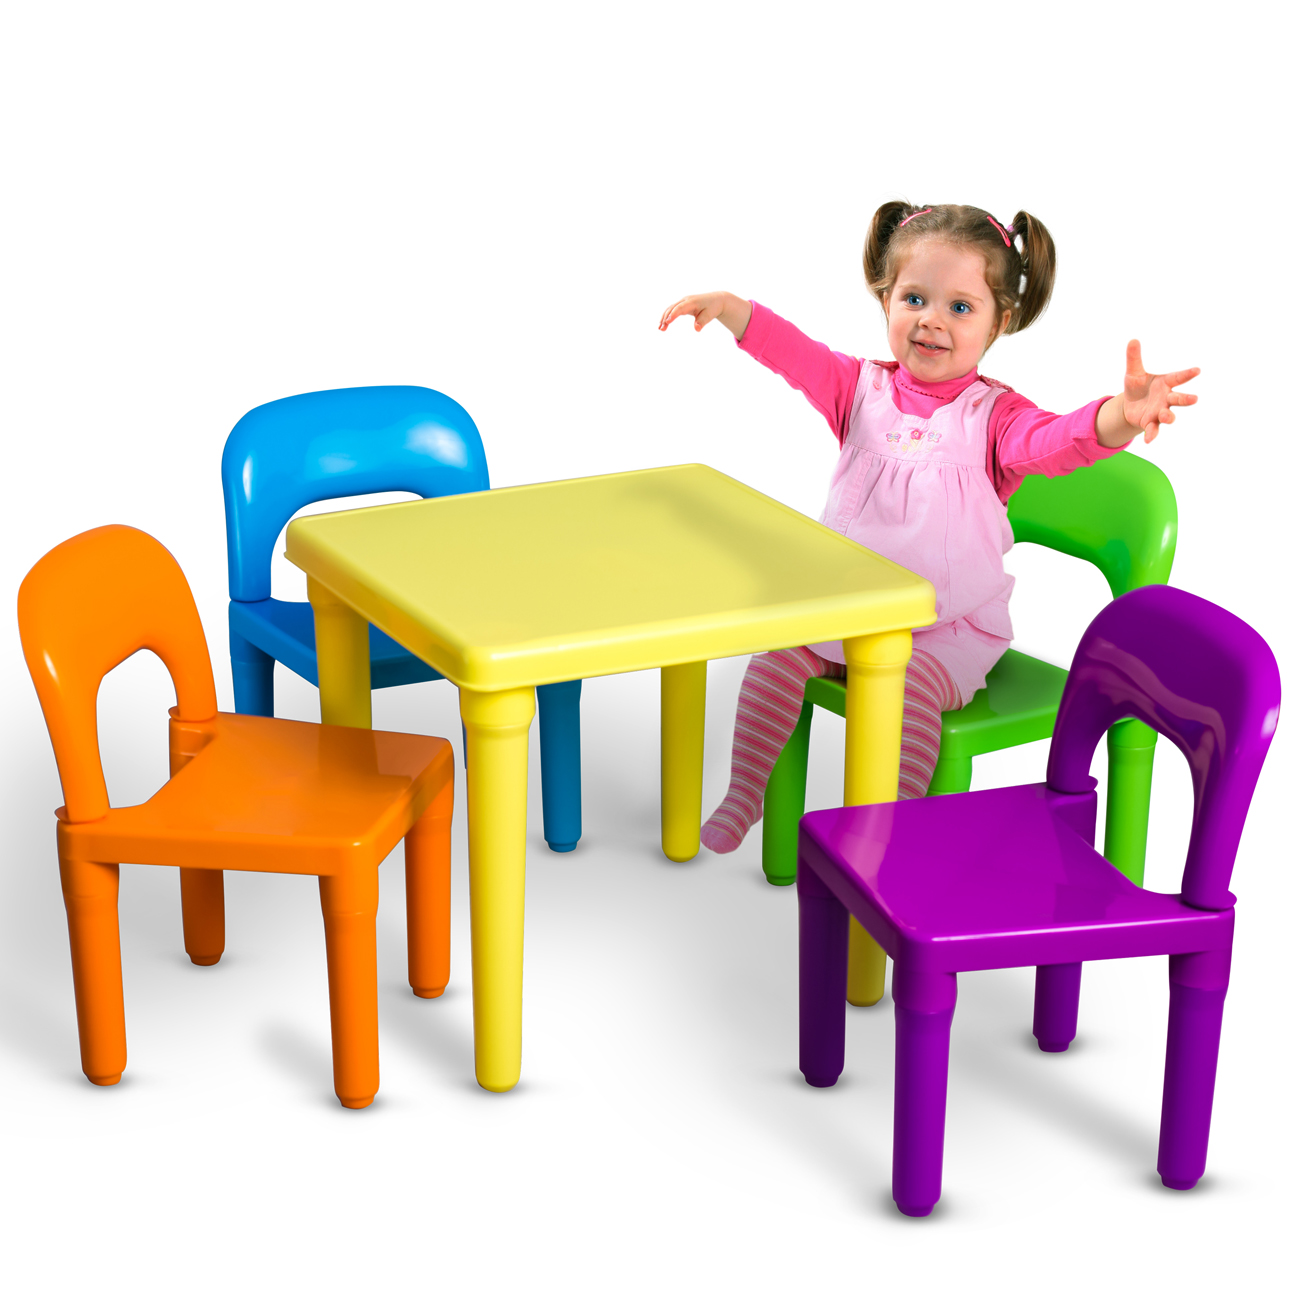 Kids table and chairs oxgord kids table and chairs play set for toddler child toy activity ACMSUFZ